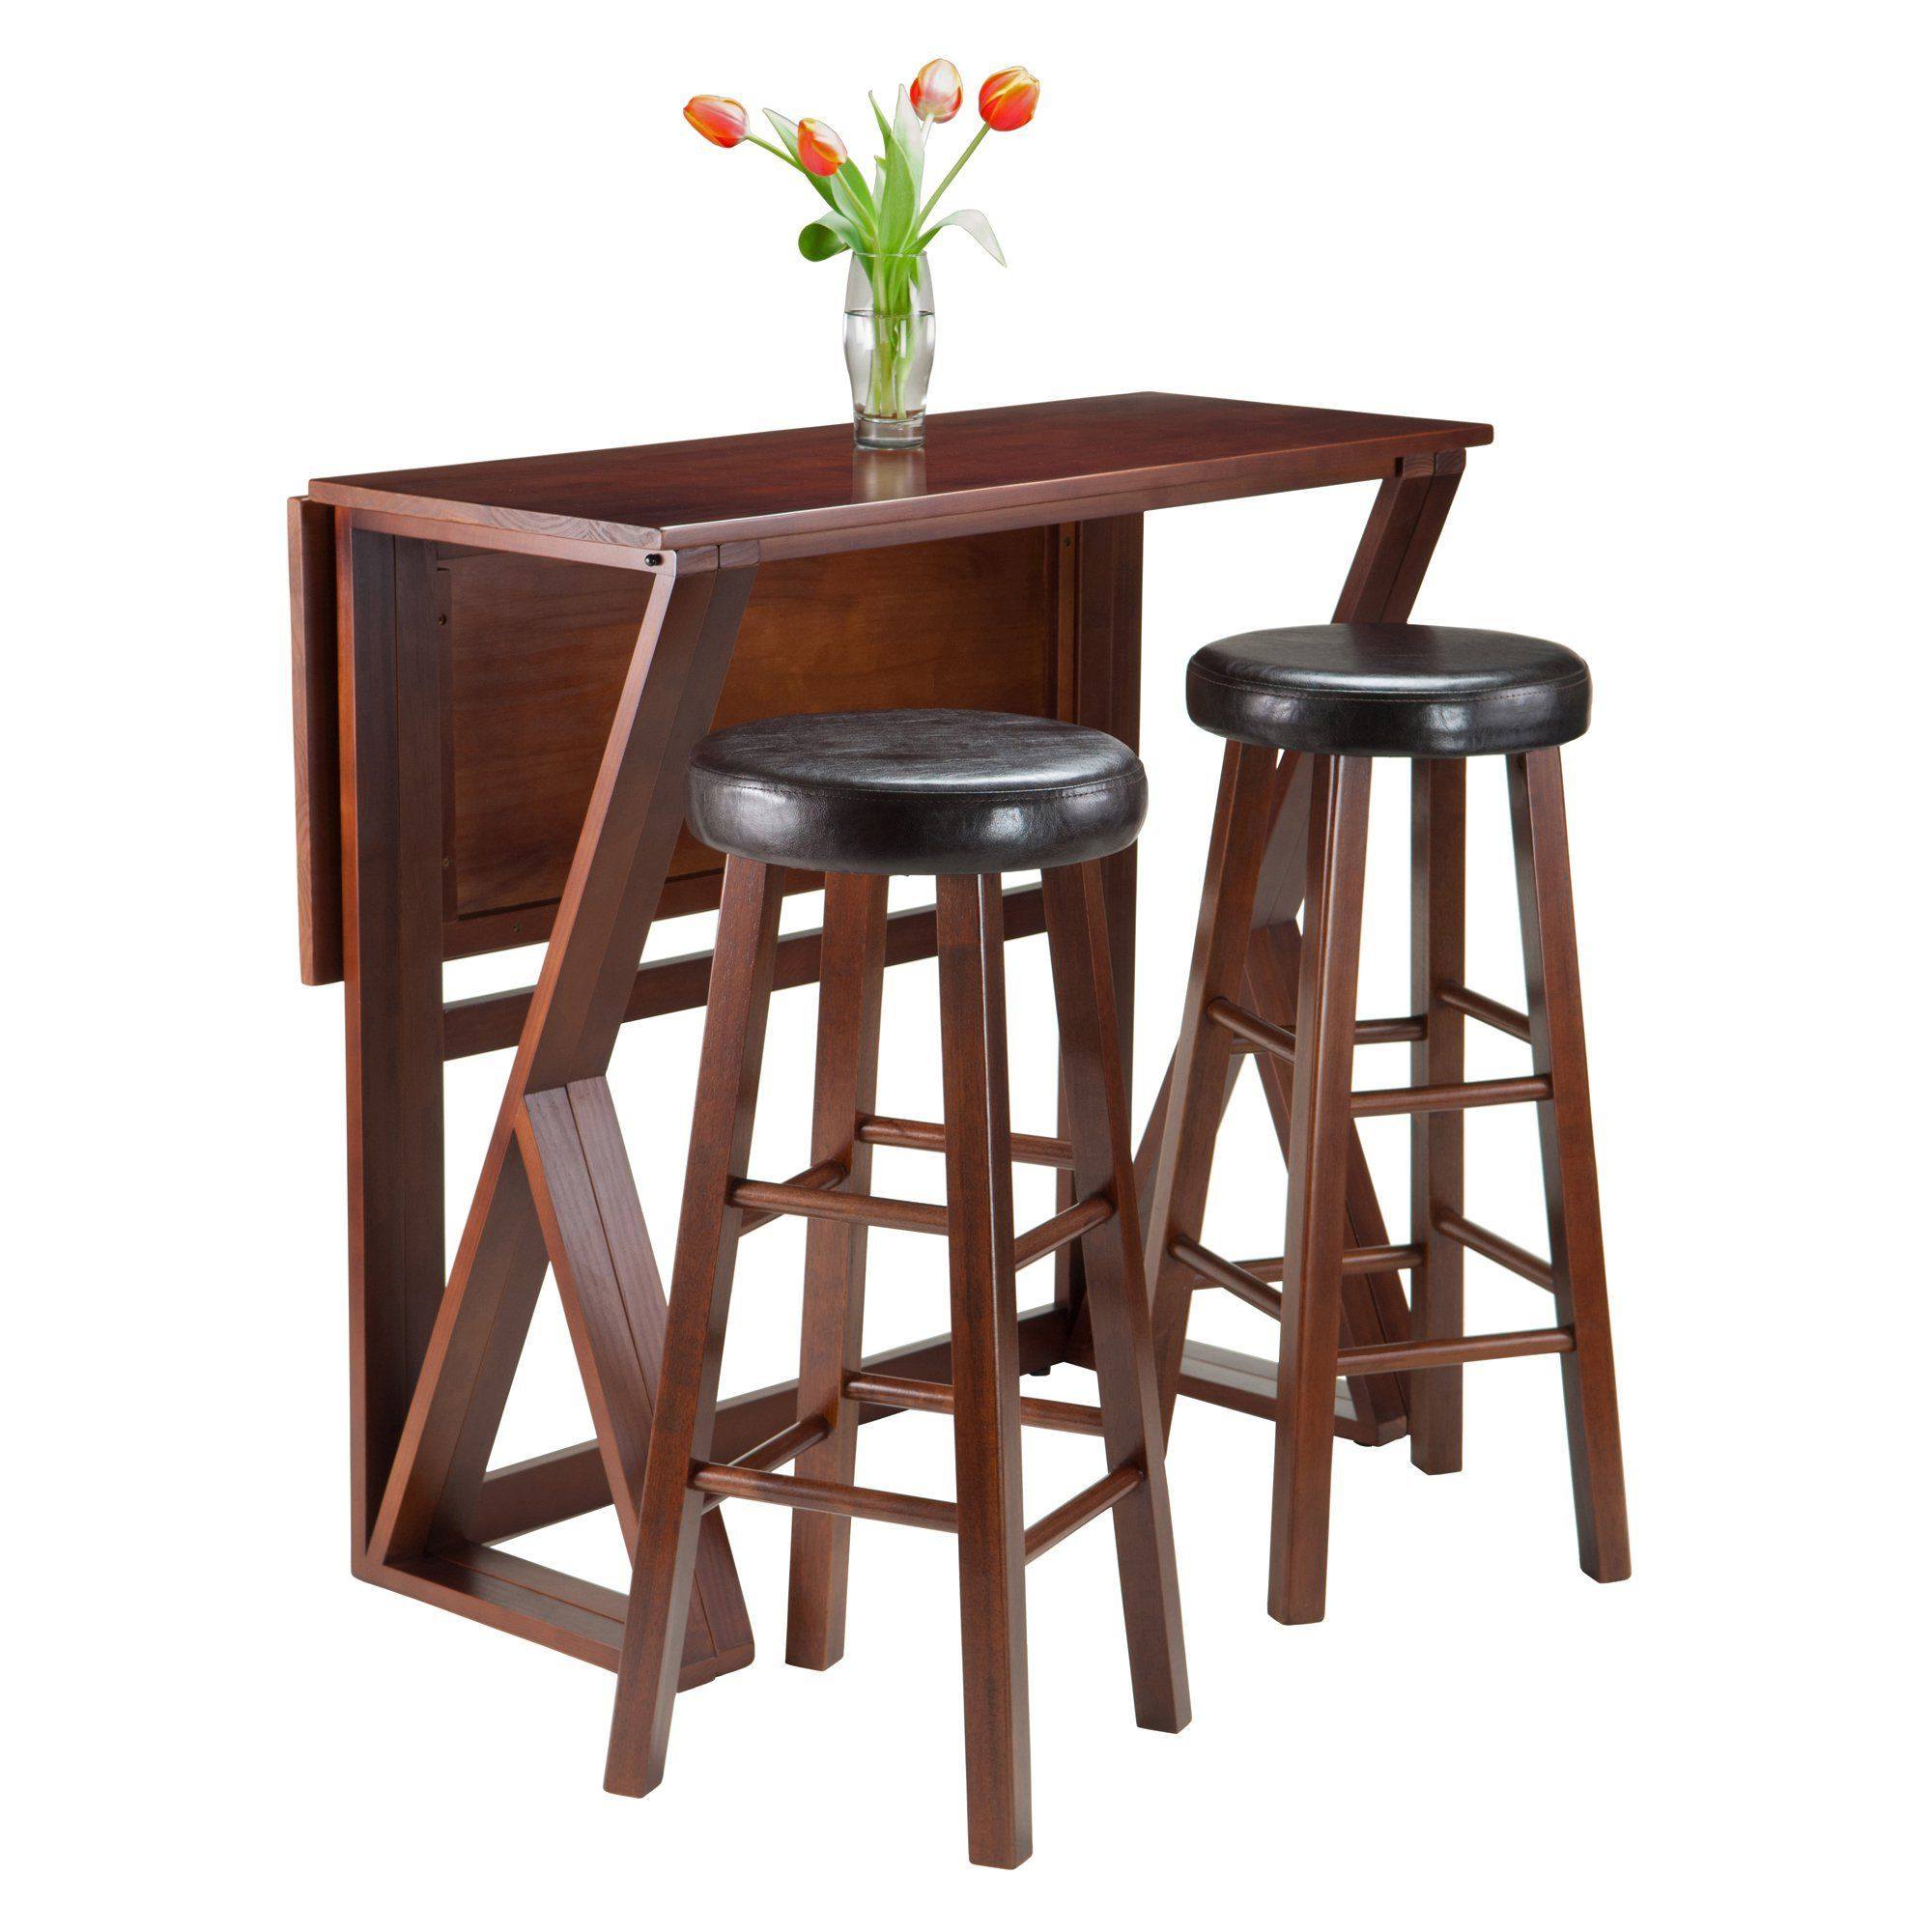 Harrington 3 Pc Drop Leaf High Table With Two Marta Cushion With Regard To Popular Crownover 3 Piece Bar Table Sets (View 6 of 25)